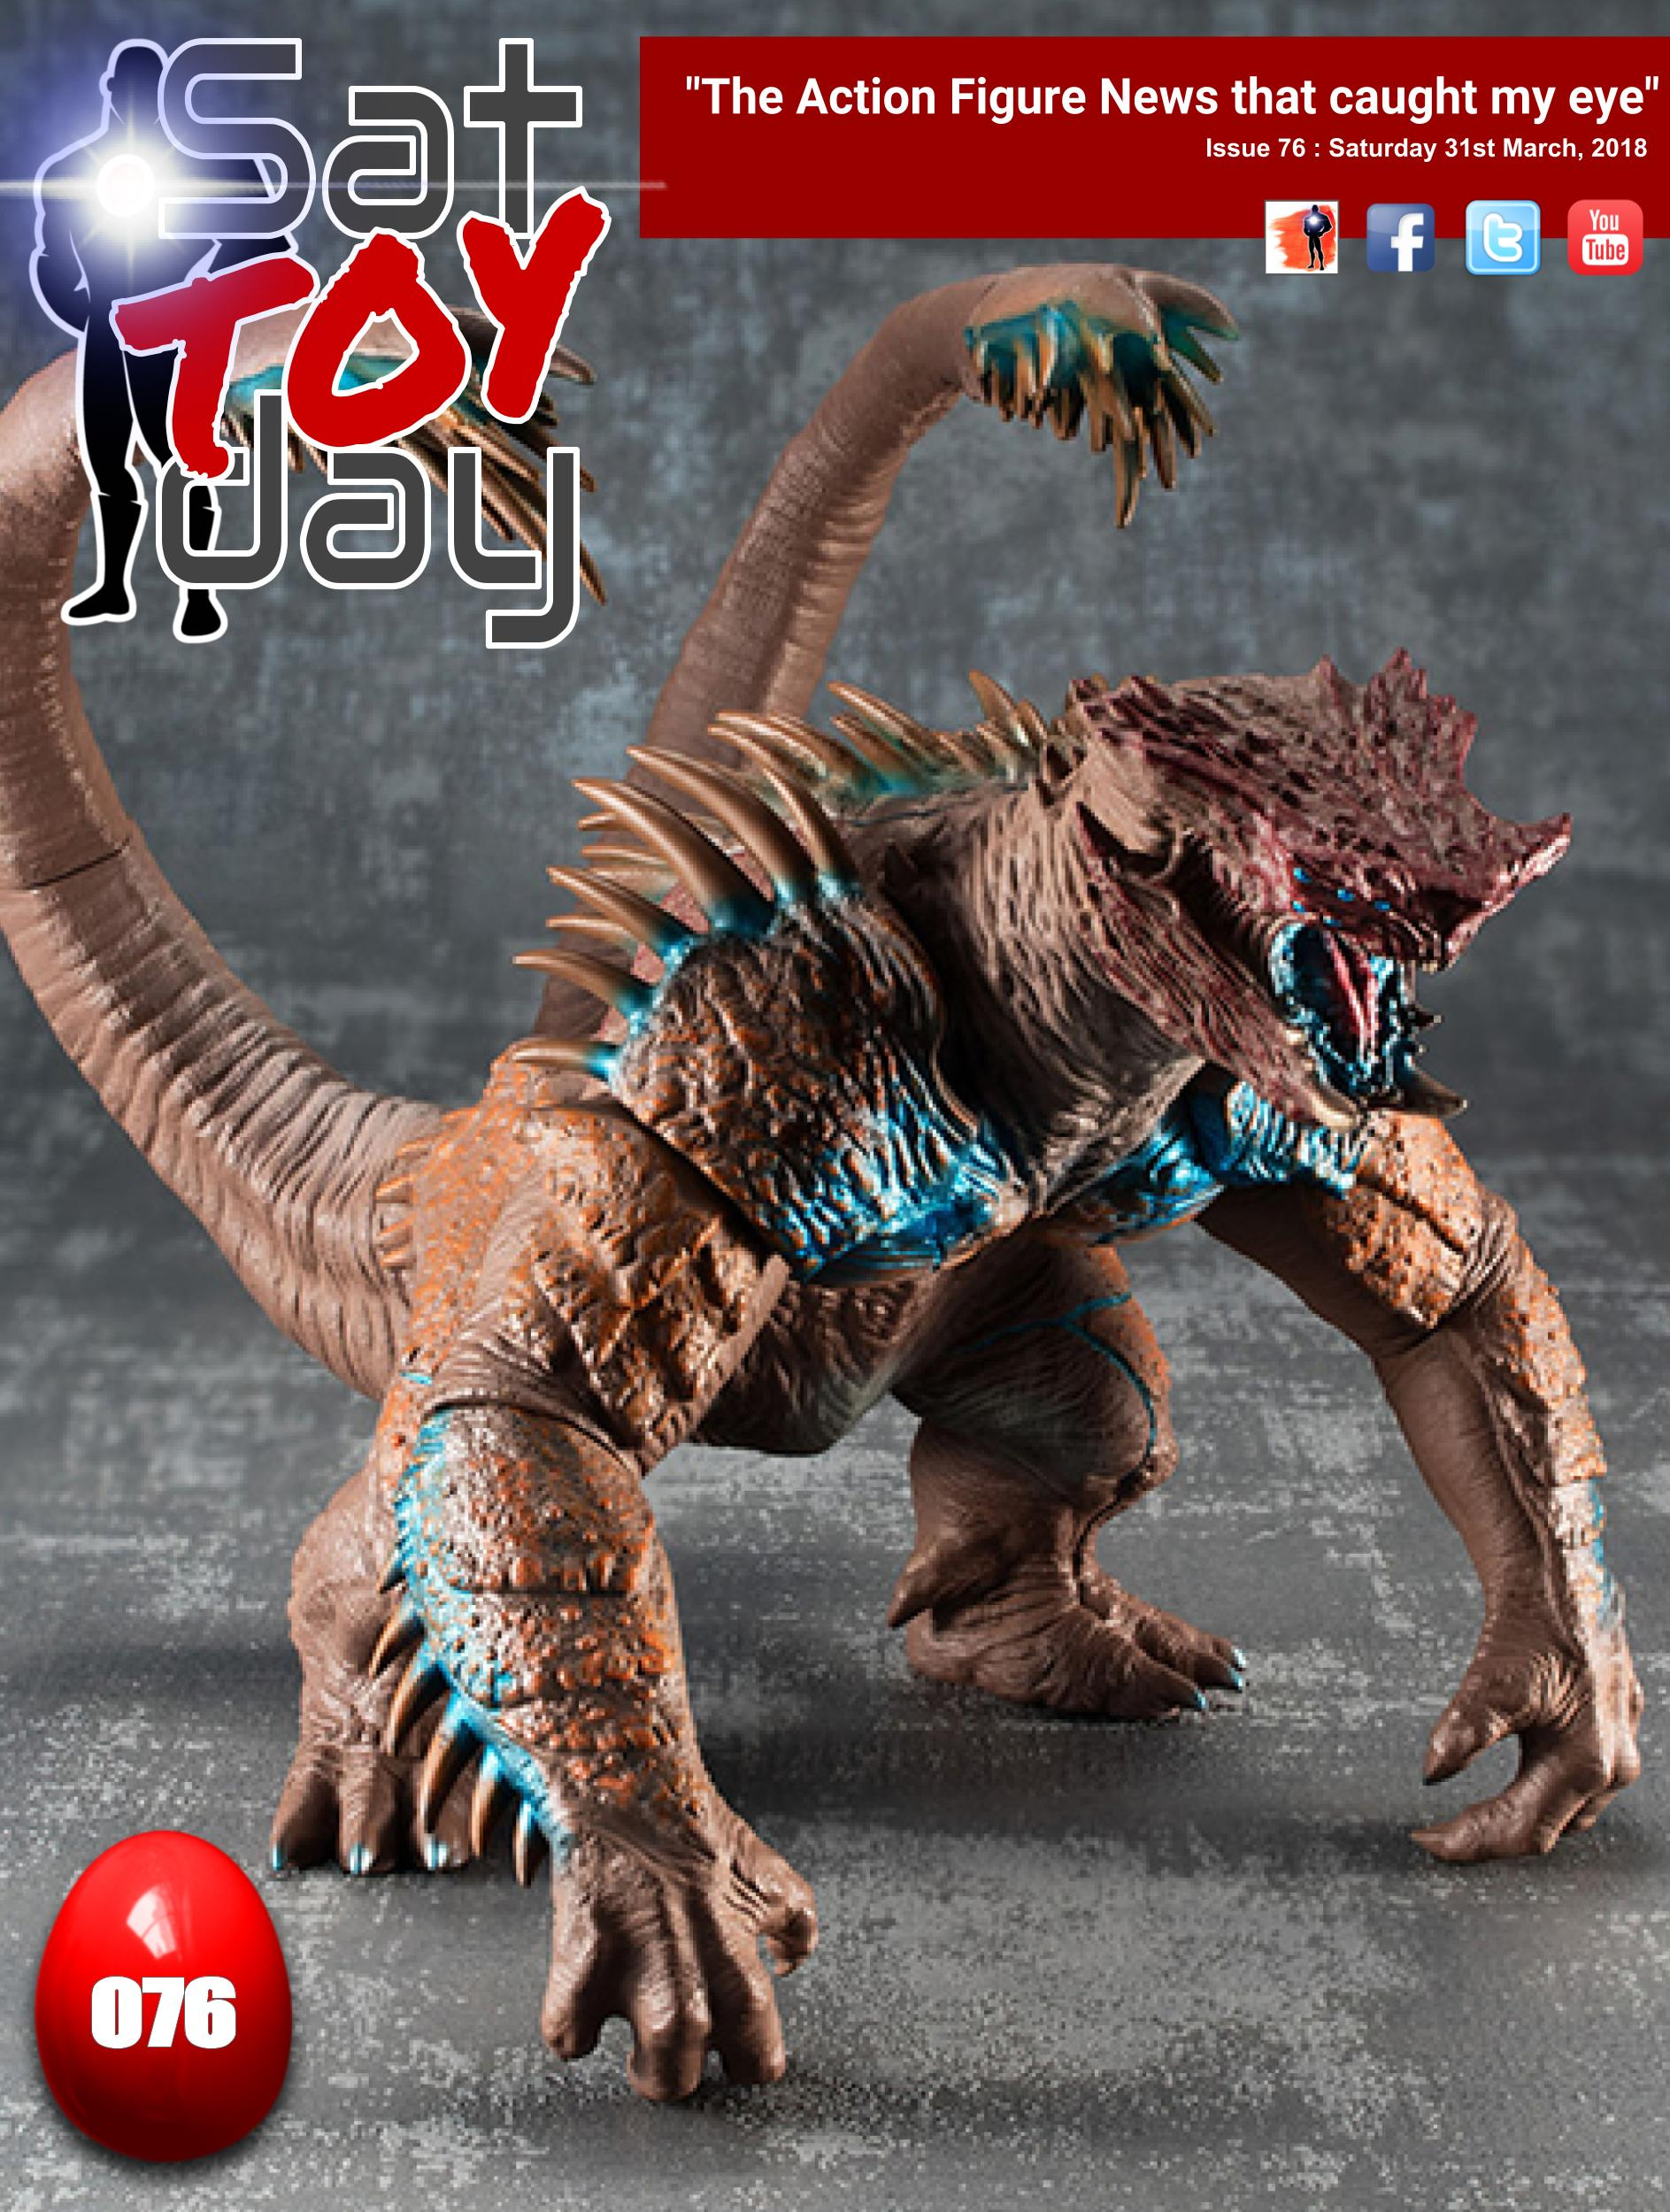 076 Action Figure Sat-TOY-day News, 31st March 2018